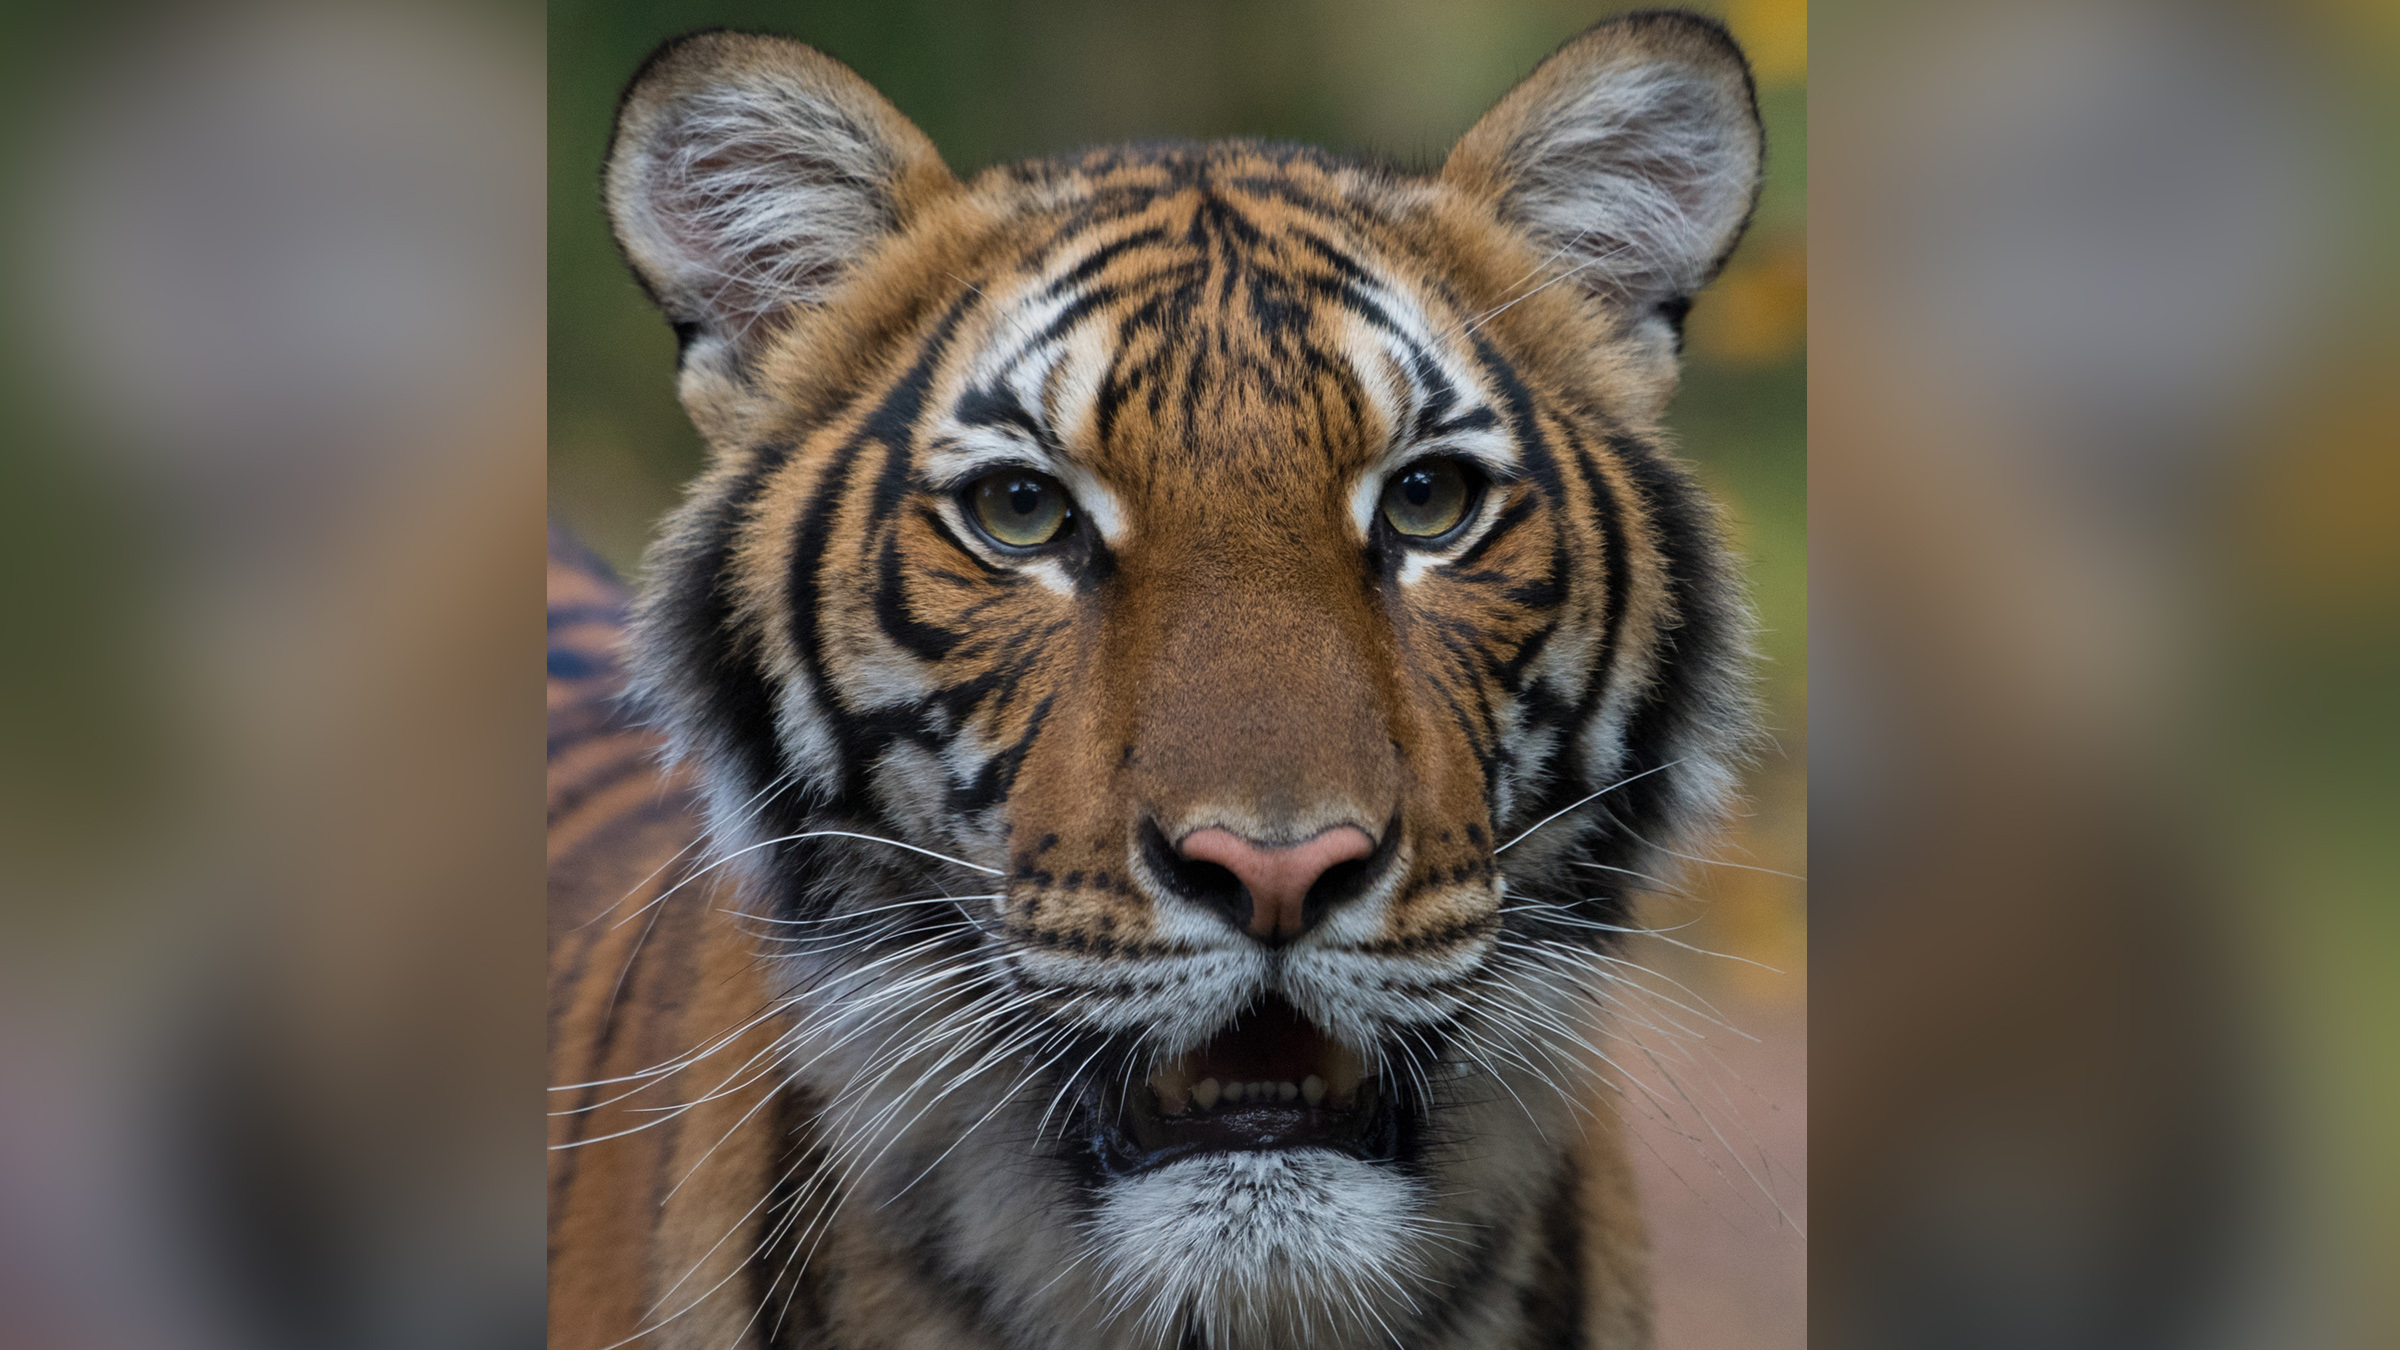 Tiger Infected with Covid-19 at the Bronx Zoo